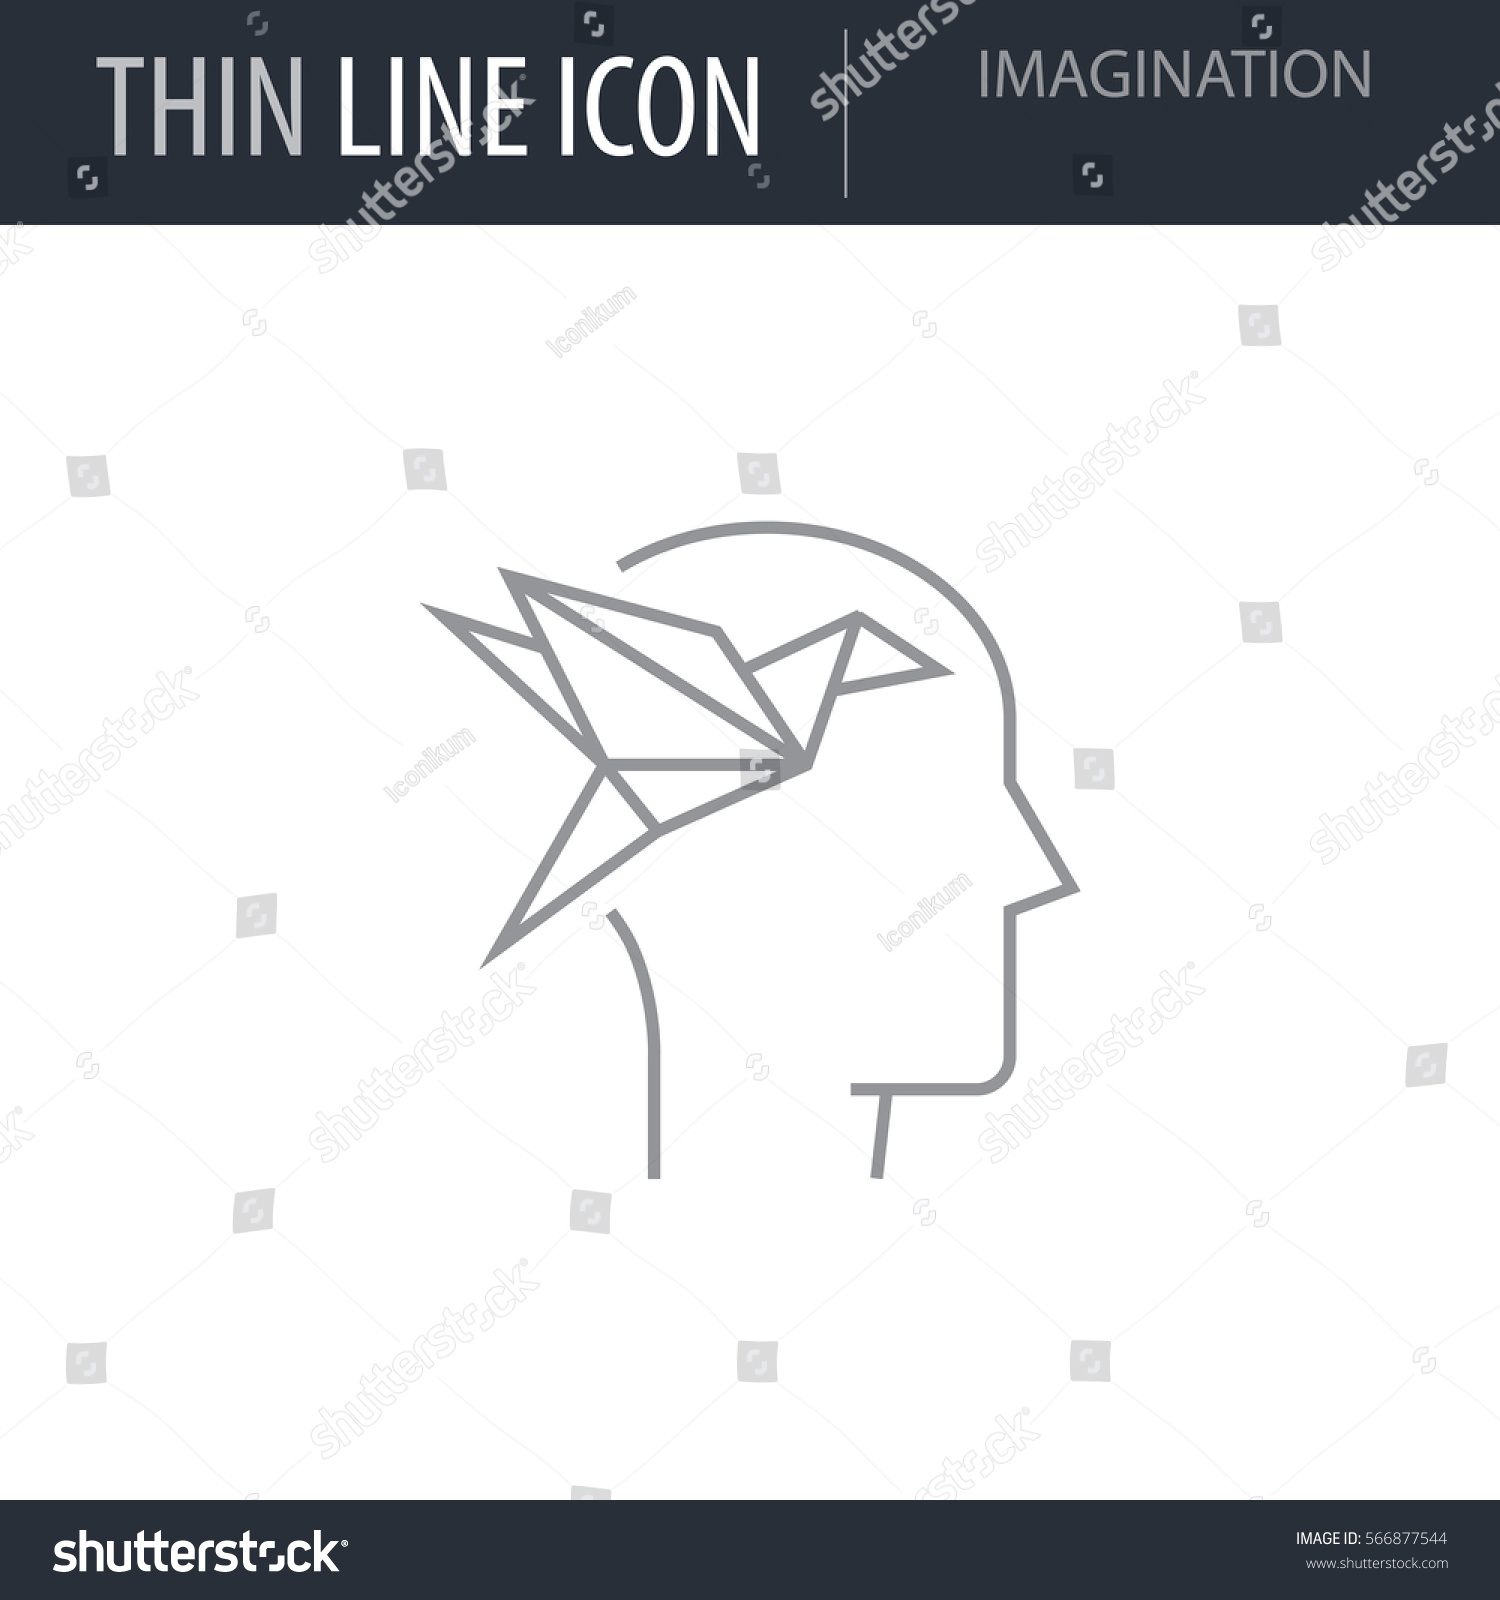 Symbol Imagination Thin Line Icon Icons Stock Vector Royalty Free